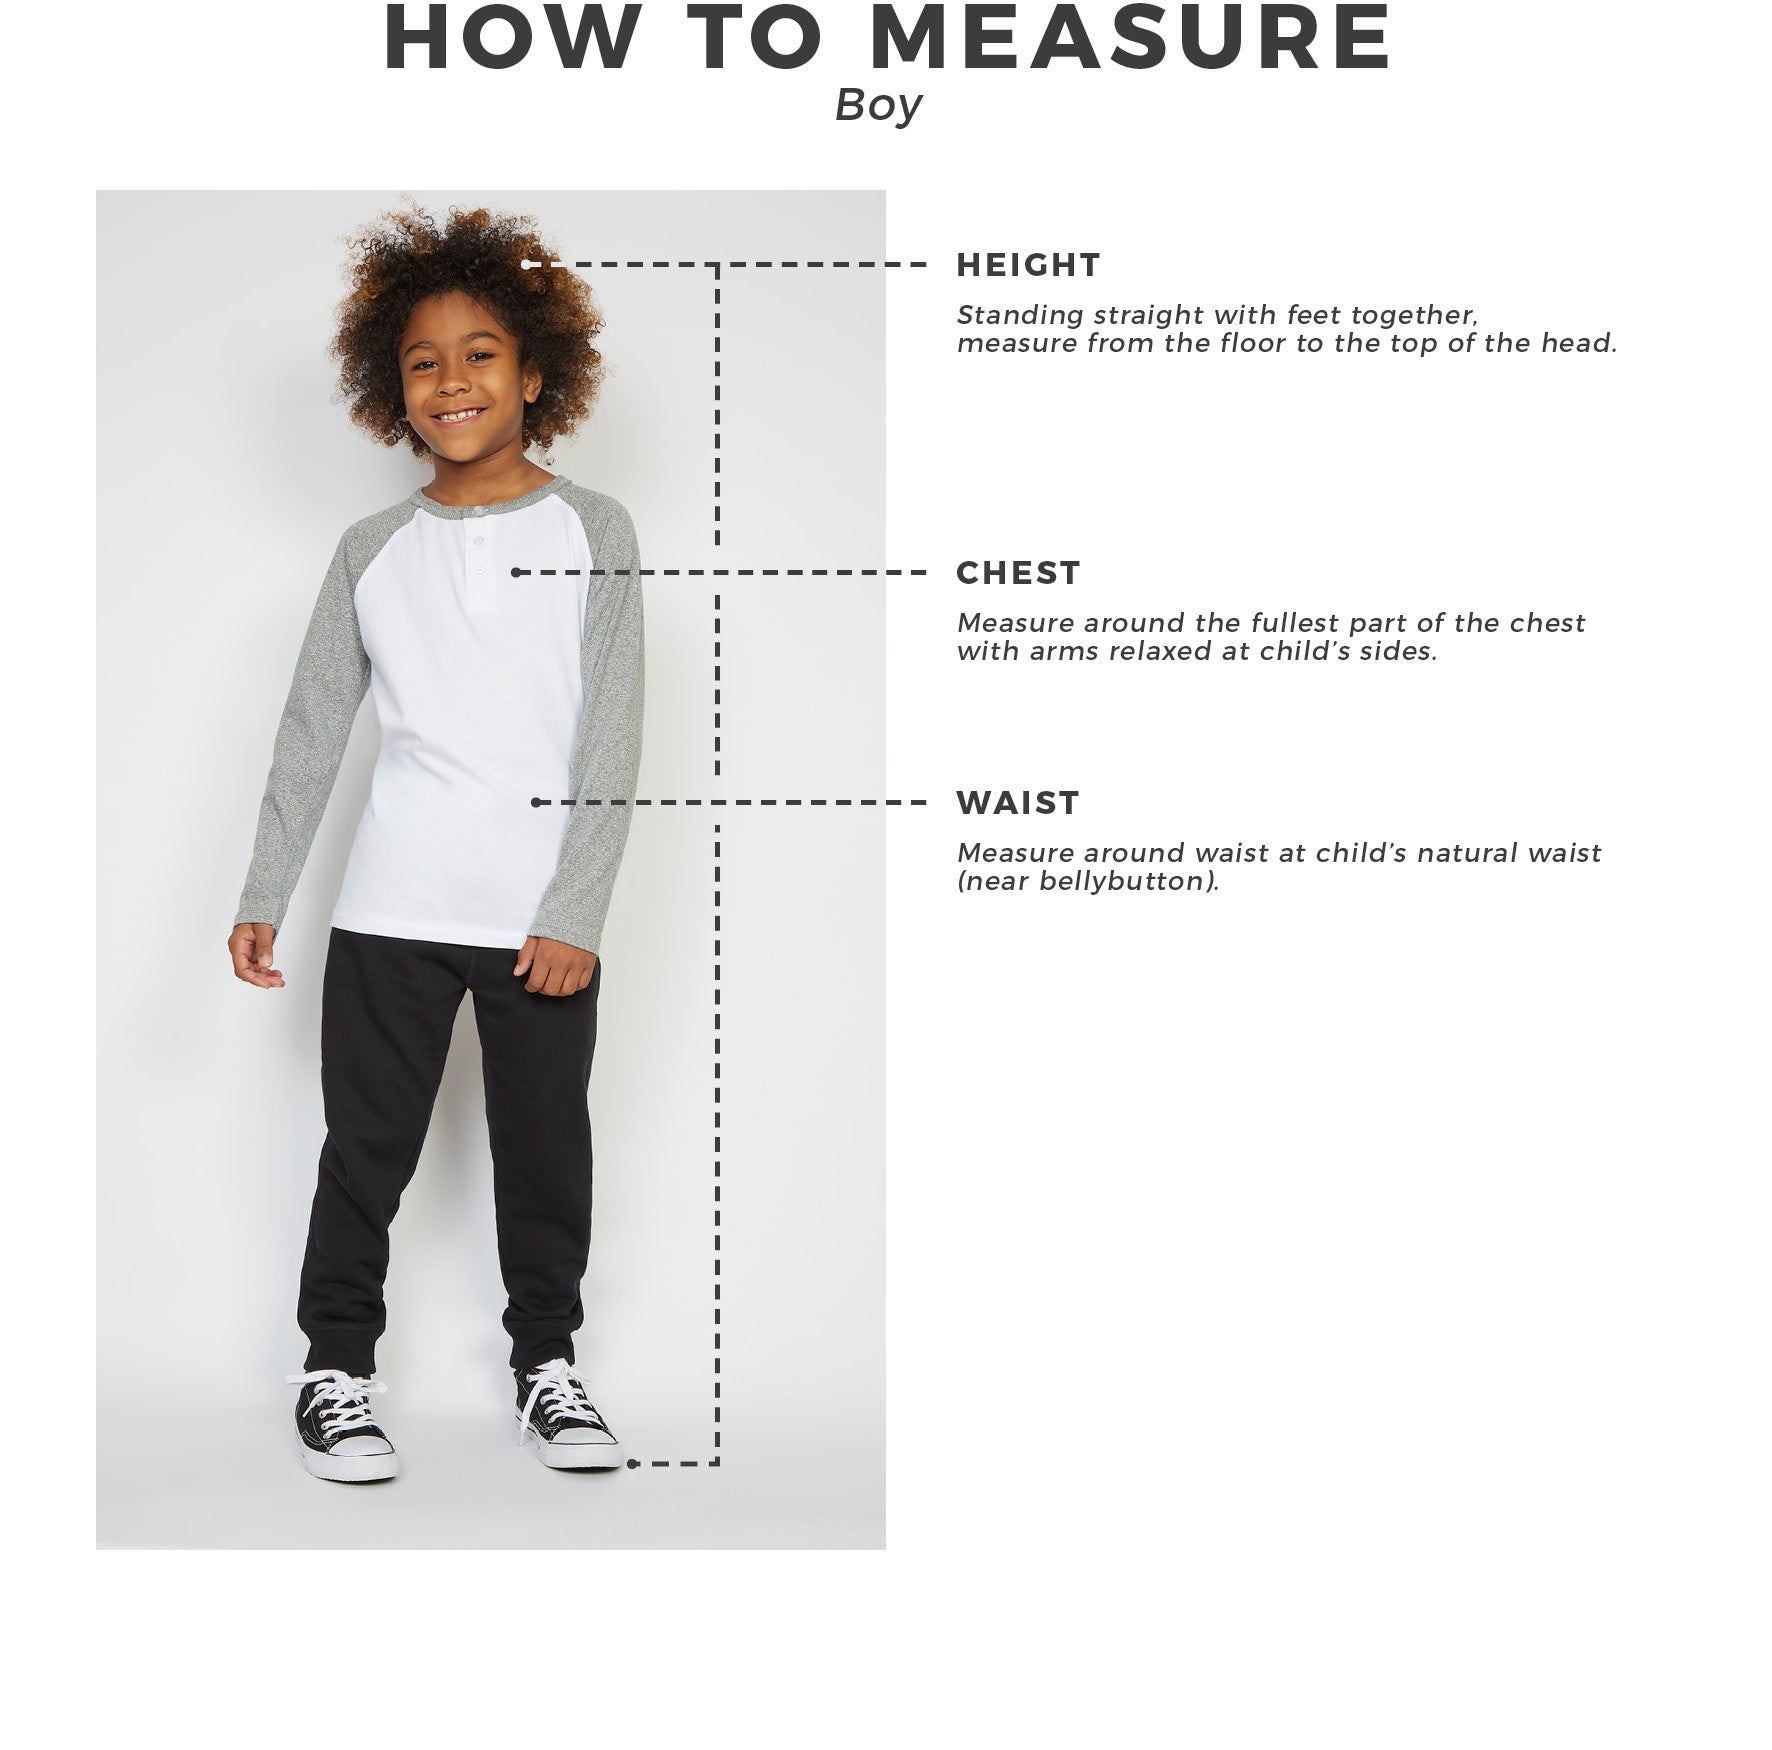 Urban Planet - Kids - Boys - How To Measure